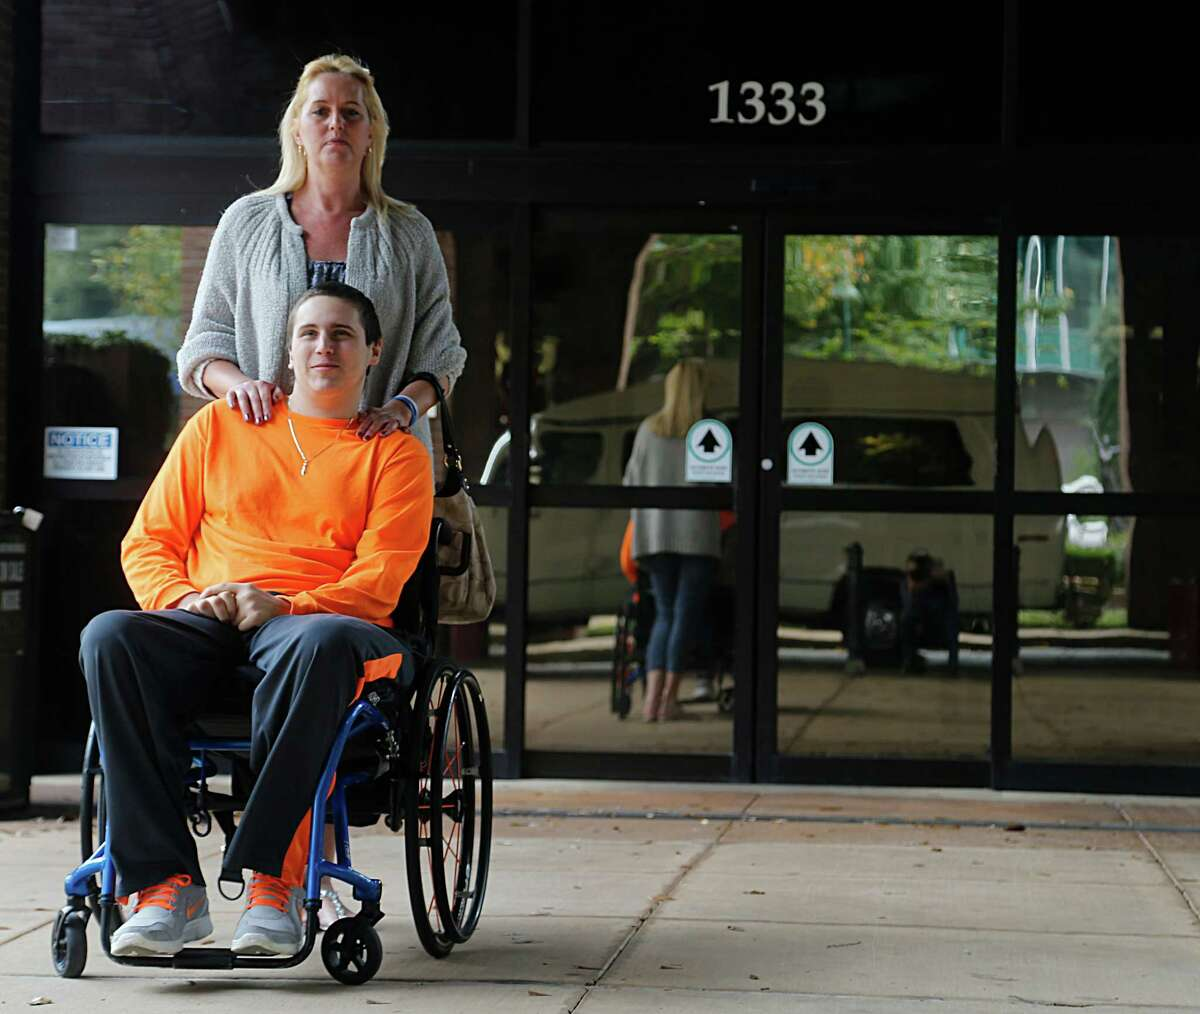 Louis Tontodonato, 20, who broke his neck in a car accident a year ago and his mother Kelly Tontodonato wait outside TIRR Memorial Hermann after test Wednesday, Dec. 16, 2015, in Houston.